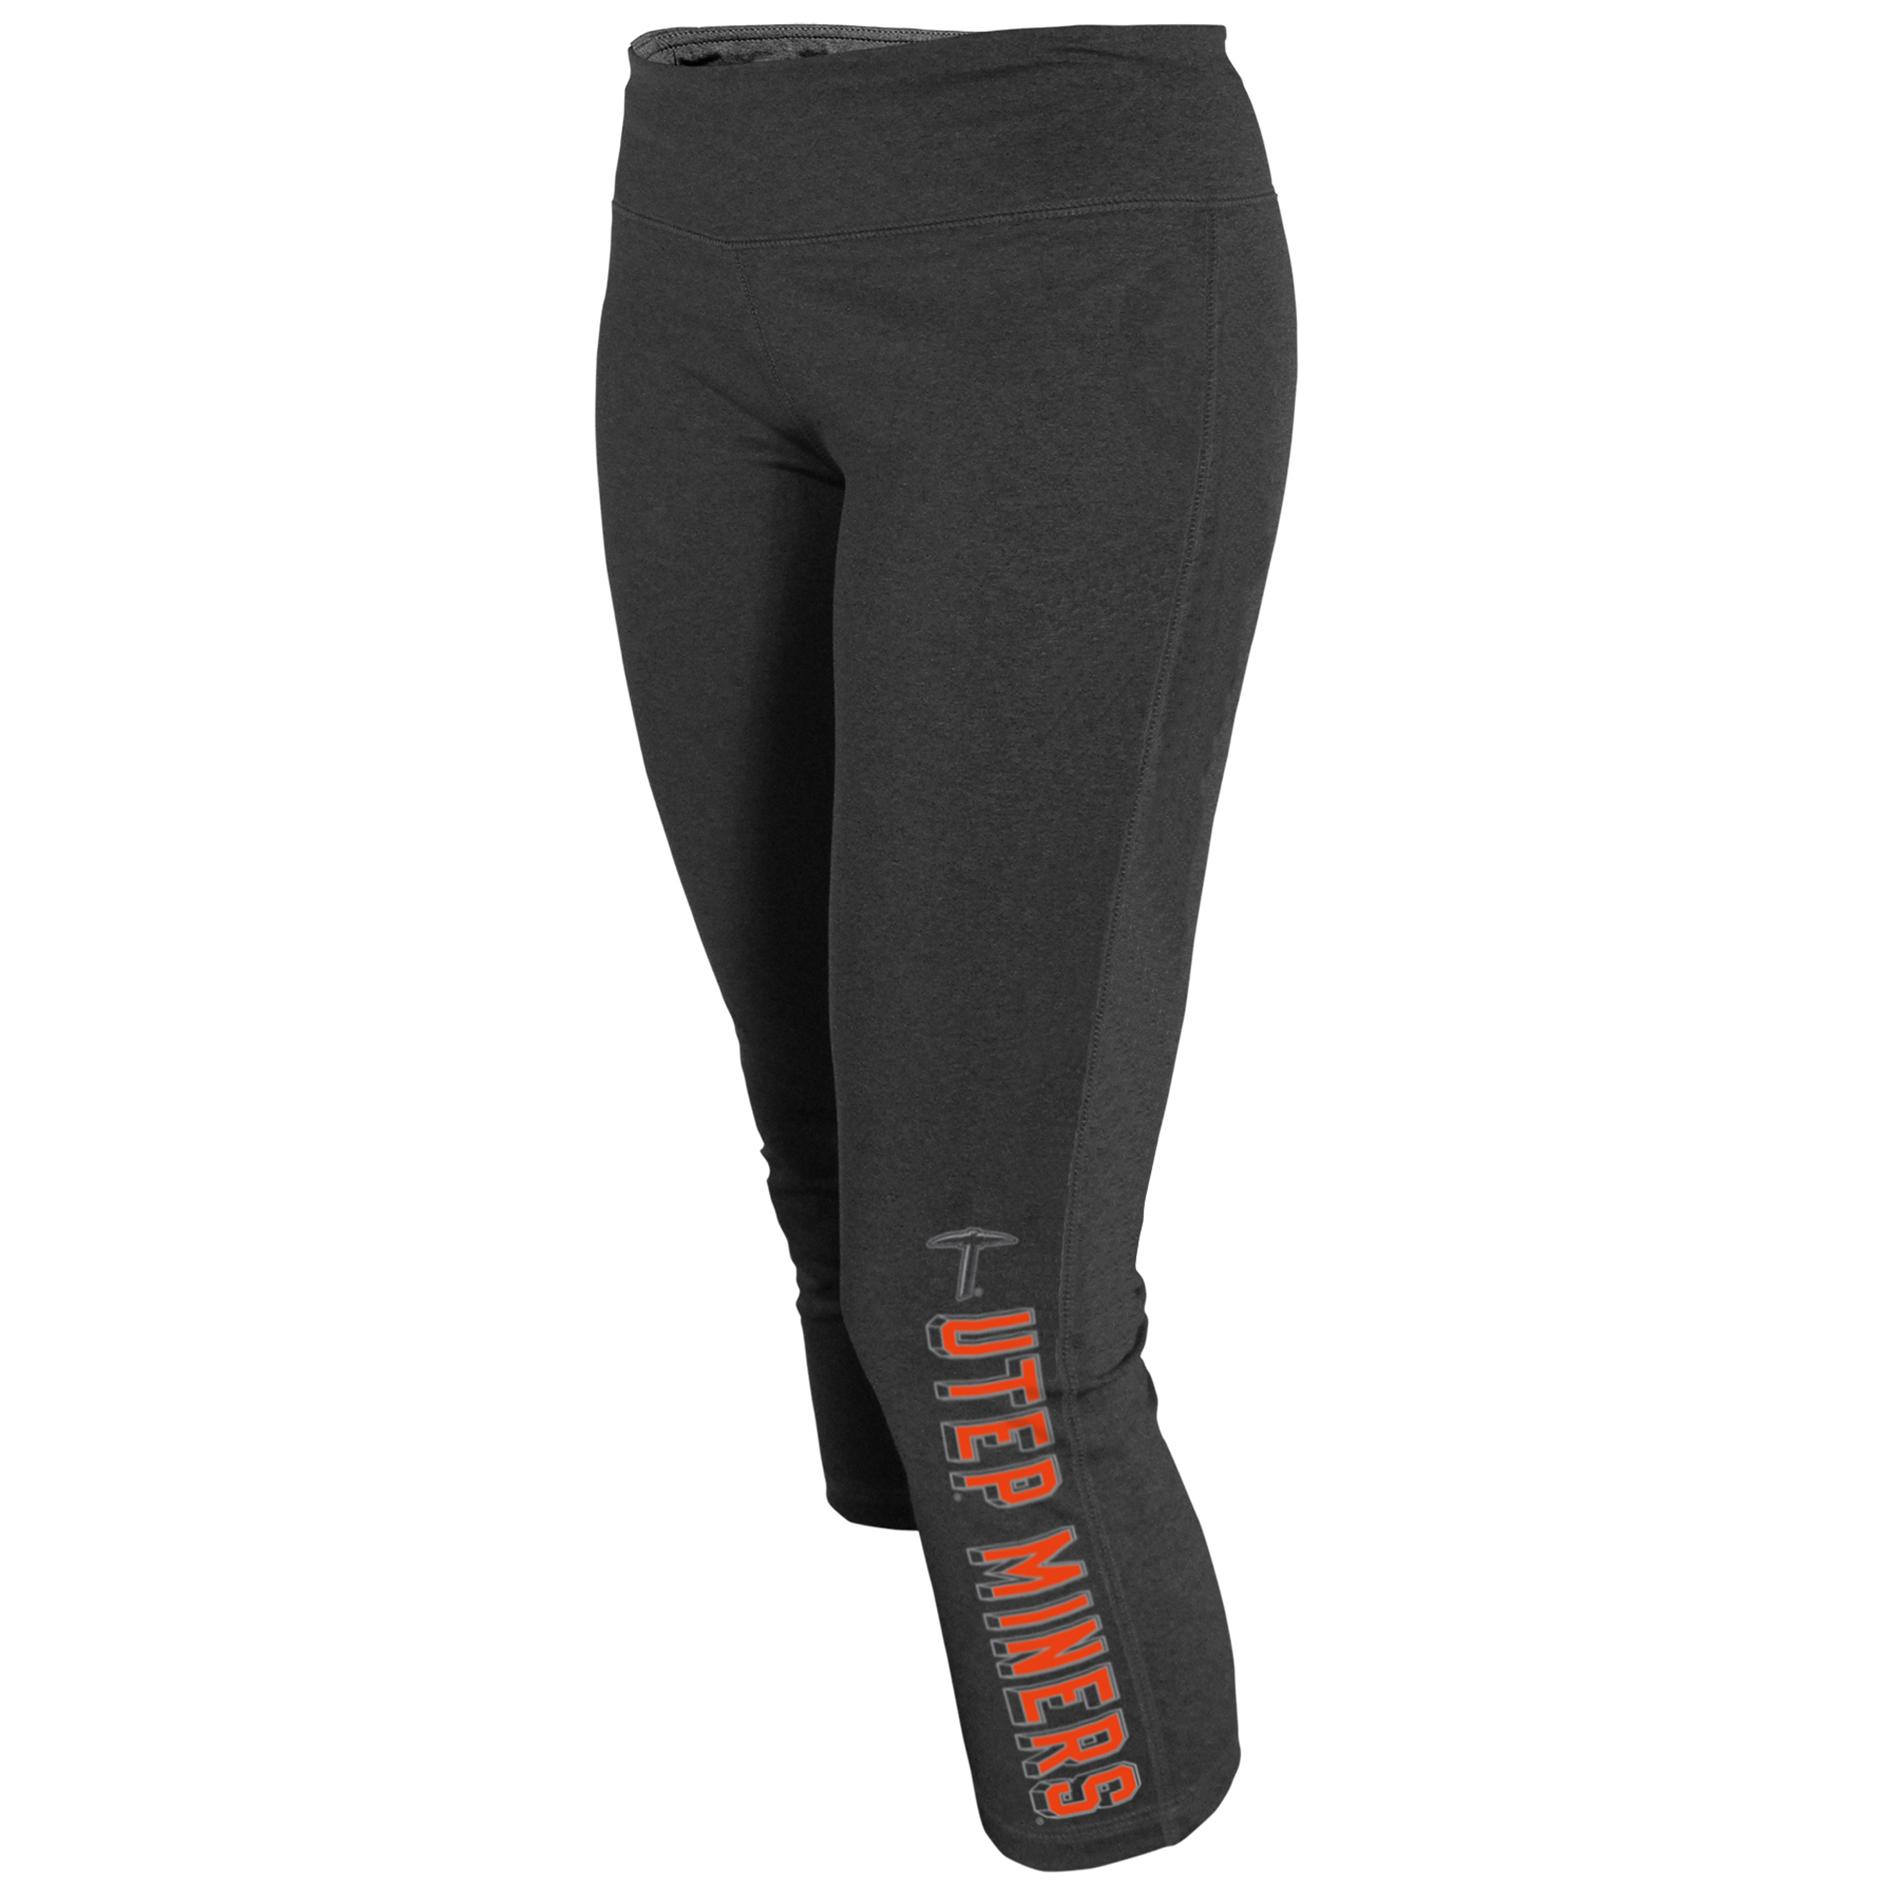 NCAA Women's Capri Yoga Pants - UTEP Miners